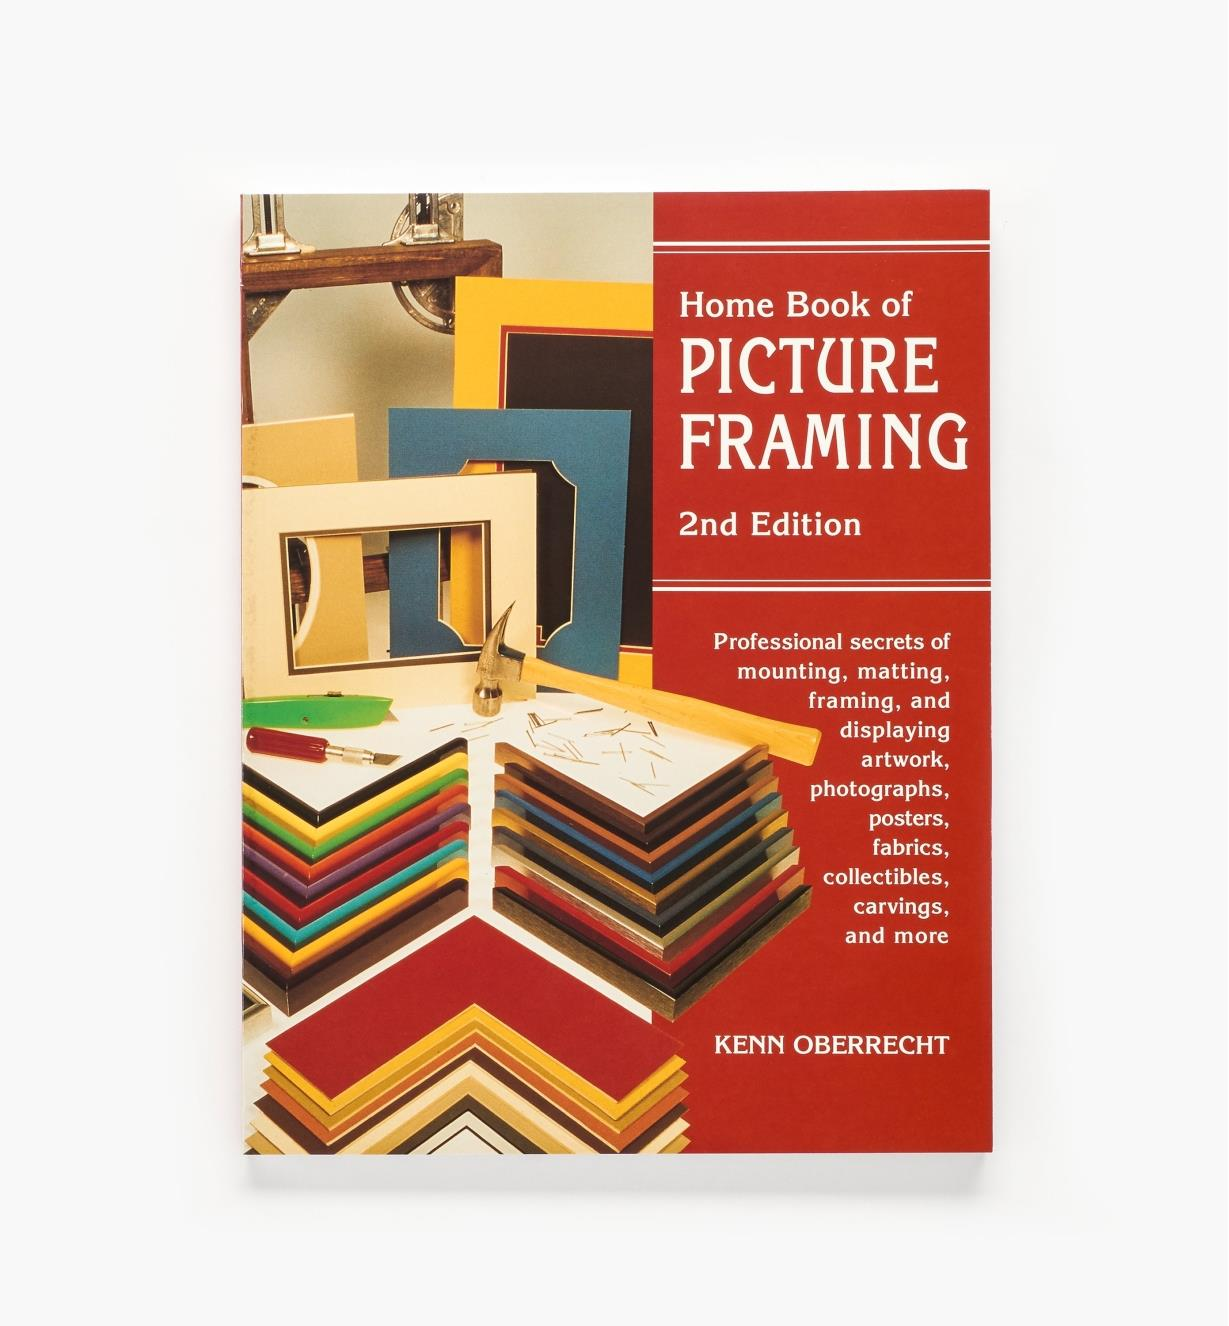 26L0707 - Home Book of Picture Framing